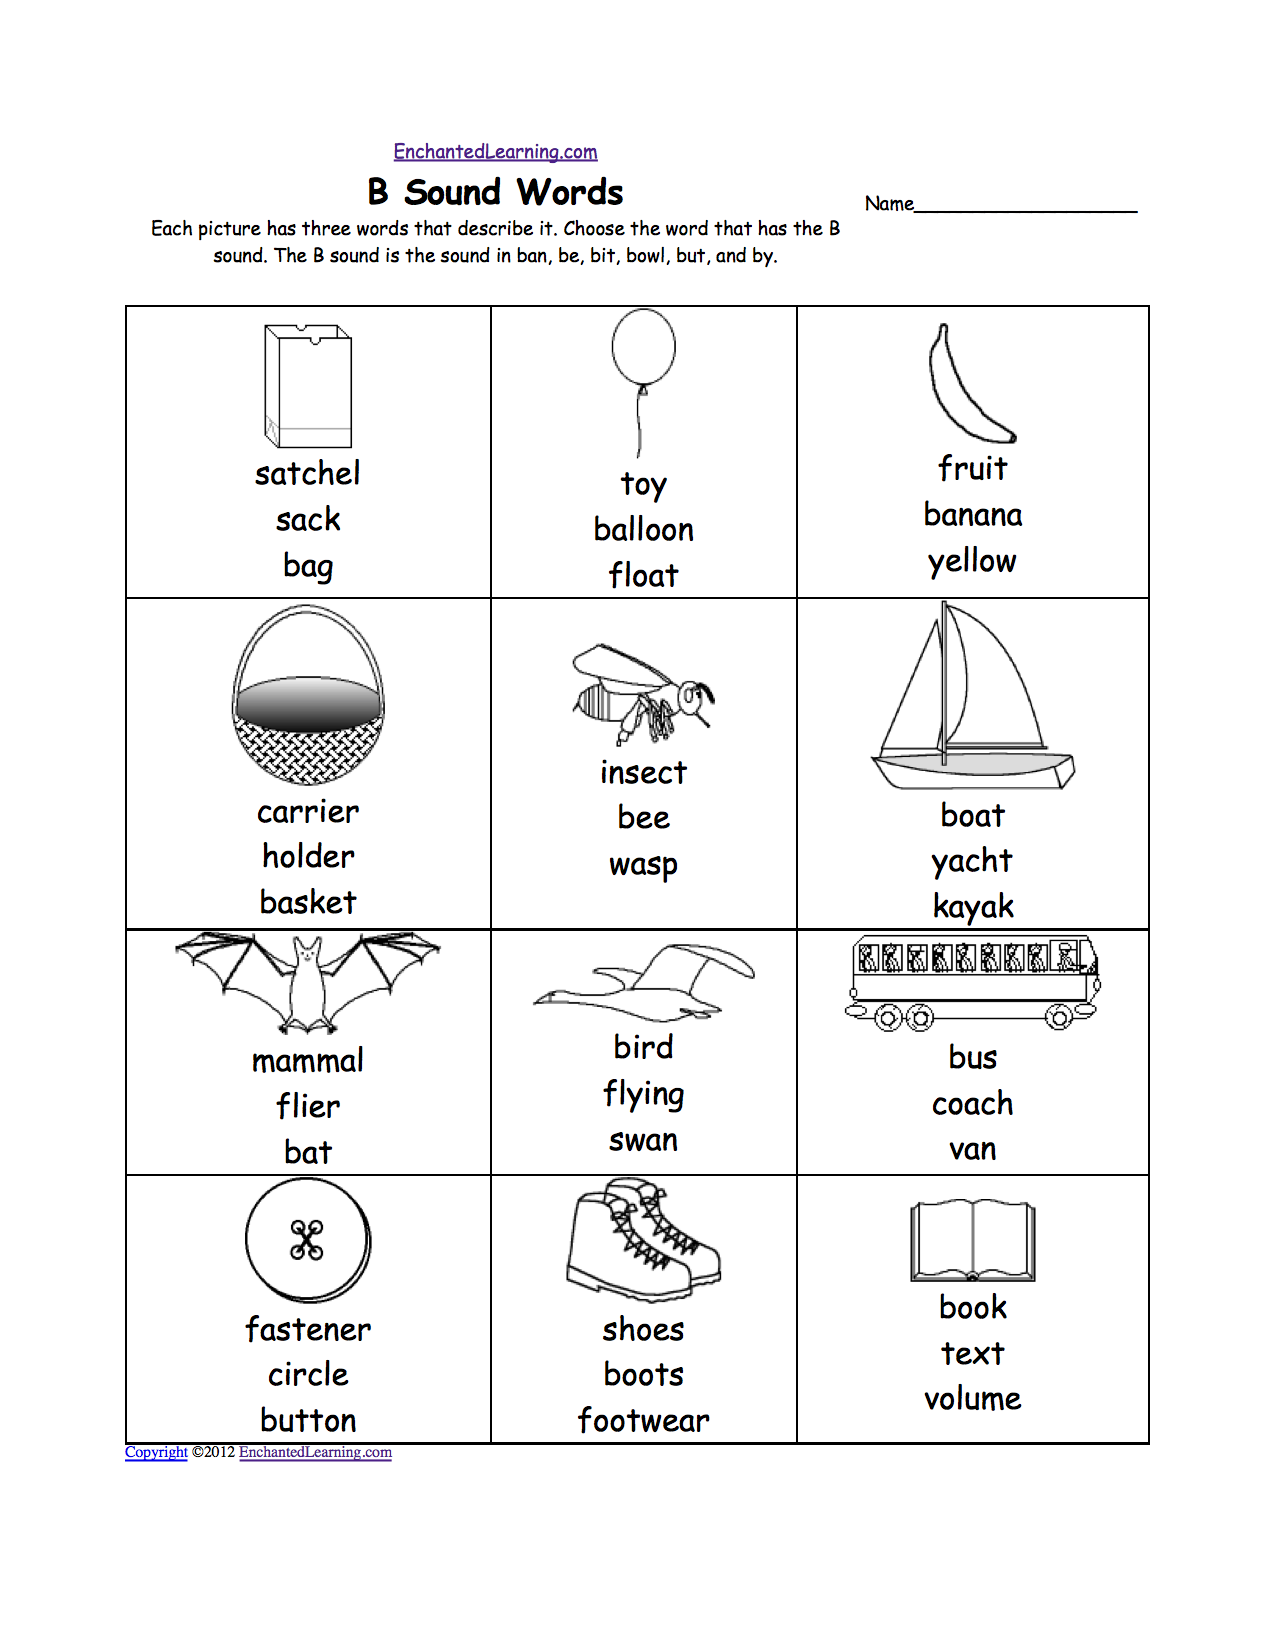 Weirdmailus  Winning Phonics Worksheets Multiple Choice Worksheets To Print  With Luxury Quotbquot Sound Phonics Worksheet Multiple Choice Each Picture Has Three Words That Describe It Choose The Word That Has A Quotbquot Sound The Quotbquot Sound Is The Sound  With Amusing Combine Worksheets Into One Worksheet Also Free Printable Skip Counting Worksheets In Addition Measurement Worksheets For First Grade And Volume And Surface Area Worksheets Grade  As Well As Bill Nye Digestion Worksheet Additionally Body Image Worksheet From Enchantedlearningcom With Weirdmailus  Luxury Phonics Worksheets Multiple Choice Worksheets To Print  With Amusing Quotbquot Sound Phonics Worksheet Multiple Choice Each Picture Has Three Words That Describe It Choose The Word That Has A Quotbquot Sound The Quotbquot Sound Is The Sound  And Winning Combine Worksheets Into One Worksheet Also Free Printable Skip Counting Worksheets In Addition Measurement Worksheets For First Grade From Enchantedlearningcom